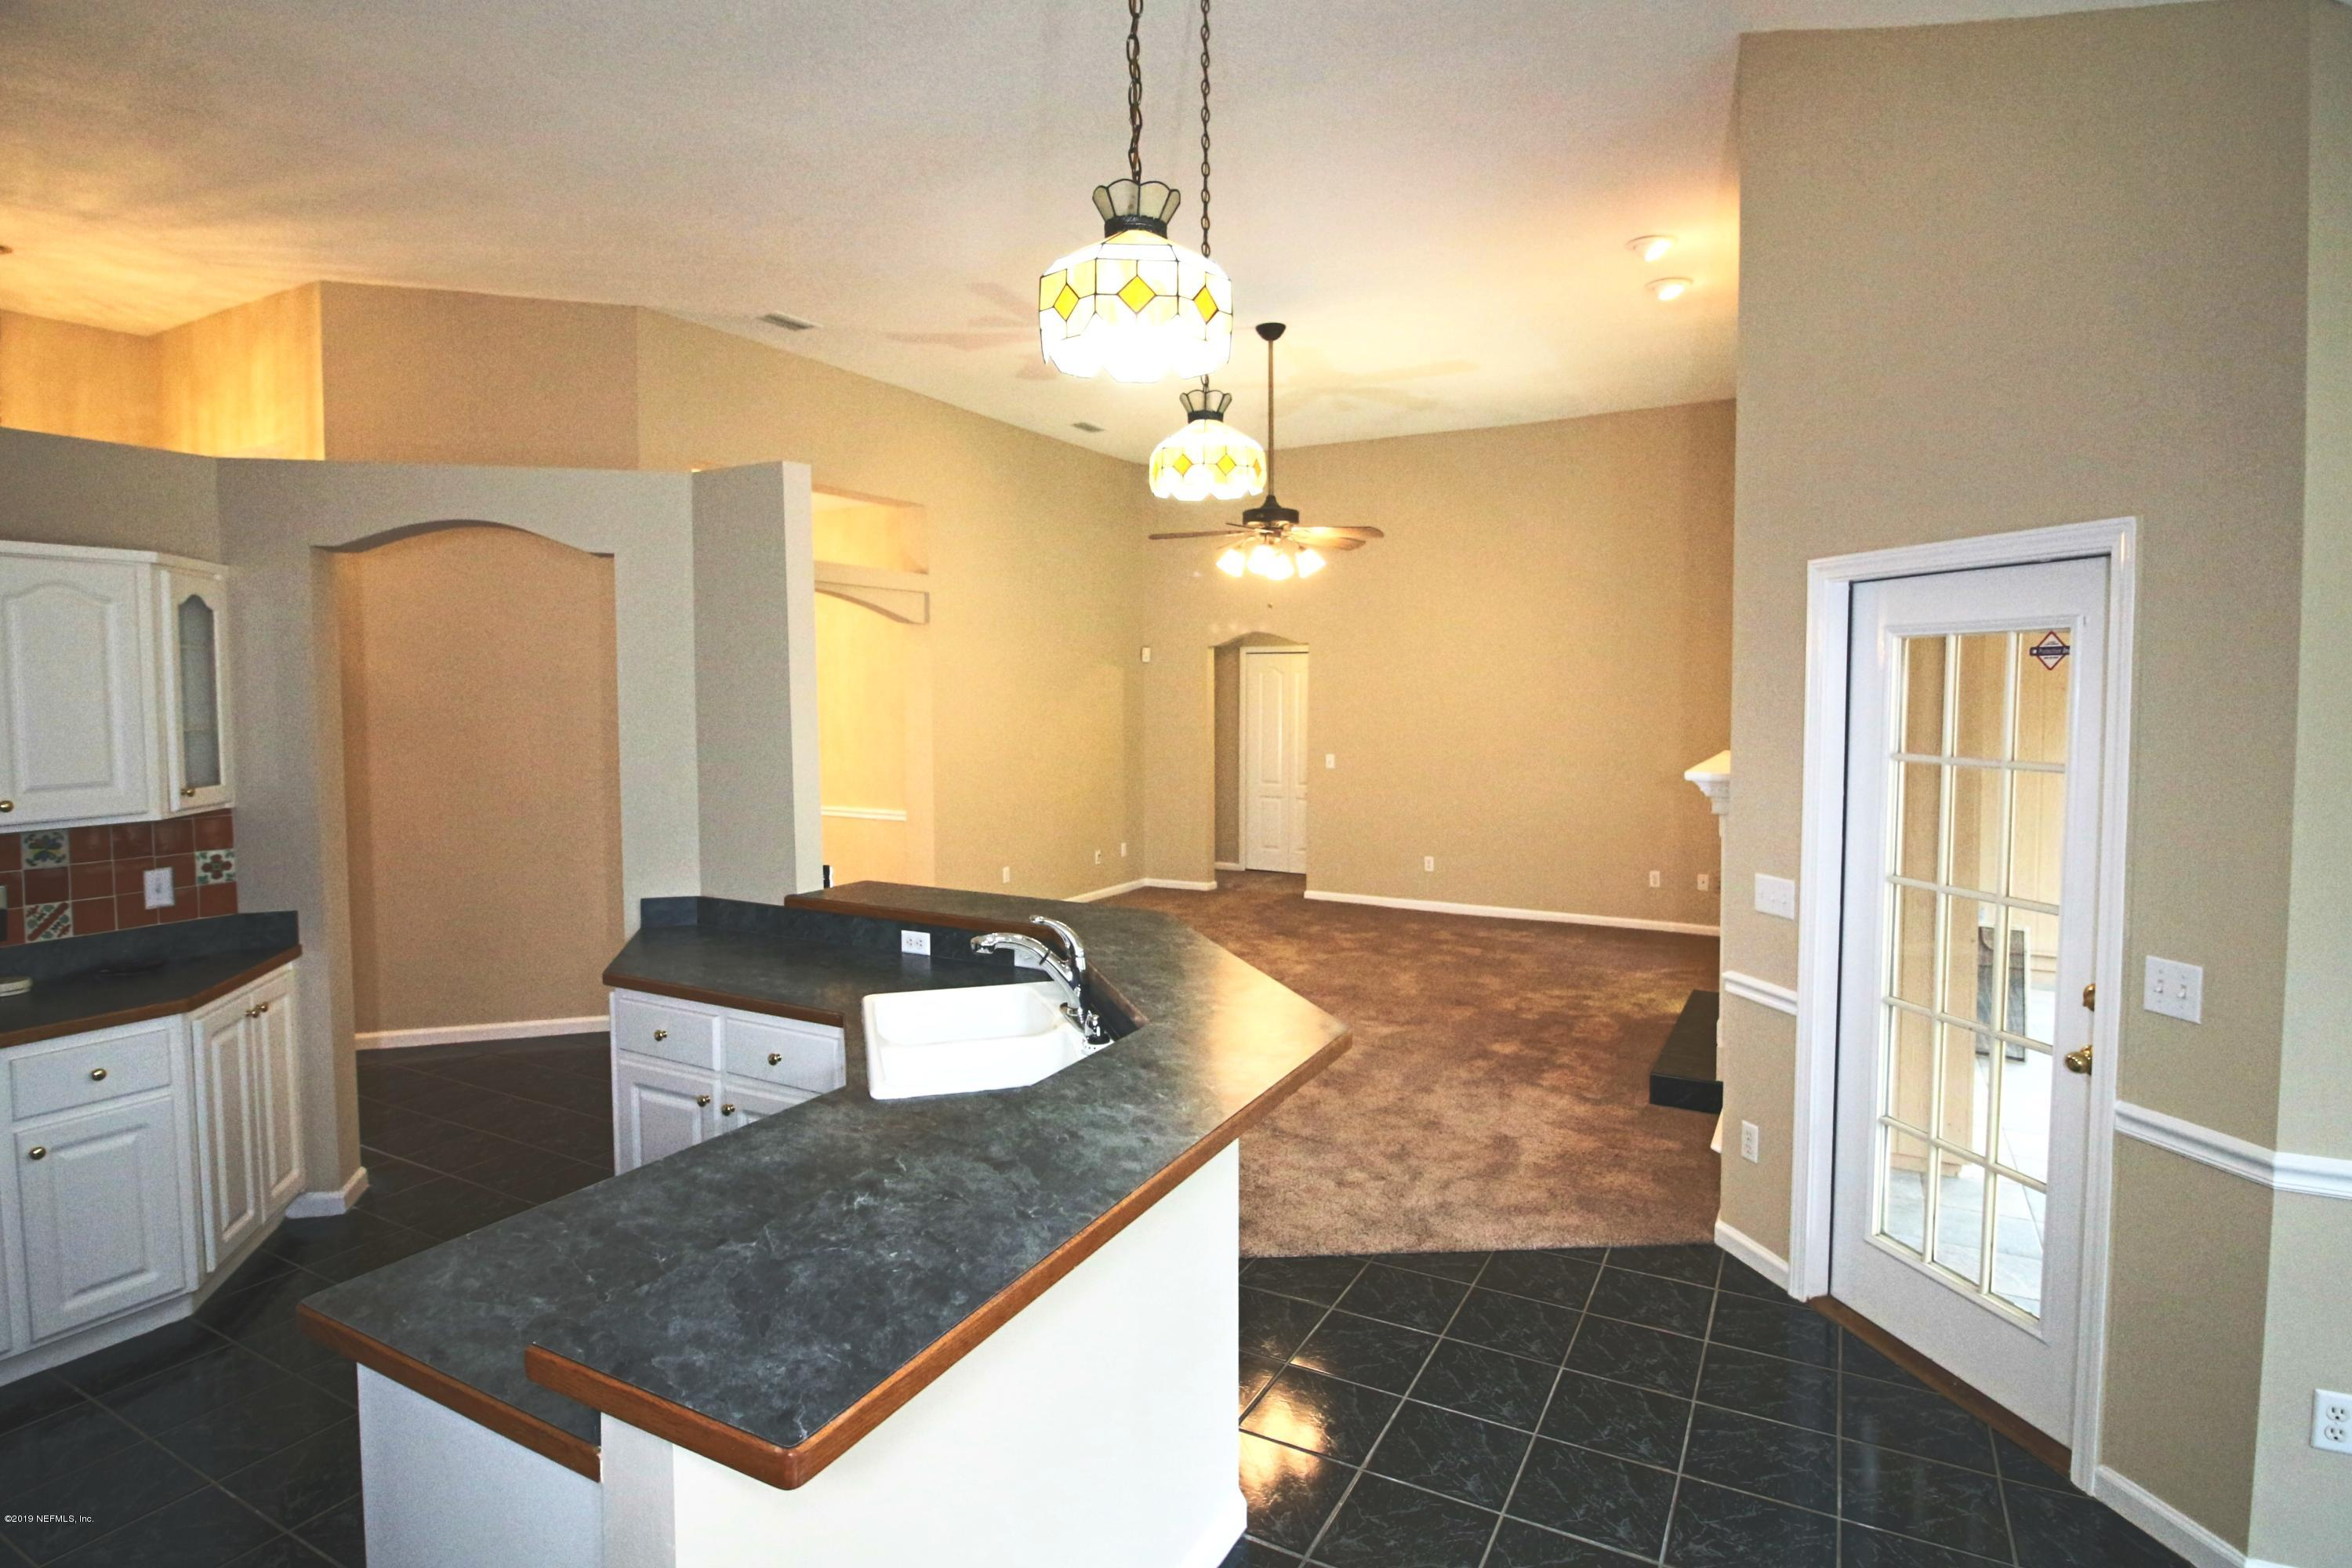 6055 TRAWICK, KEYSTONE HEIGHTS, FLORIDA 32656, 3 Bedrooms Bedrooms, ,2 BathroomsBathrooms,Residential - single family,For sale,TRAWICK,979355